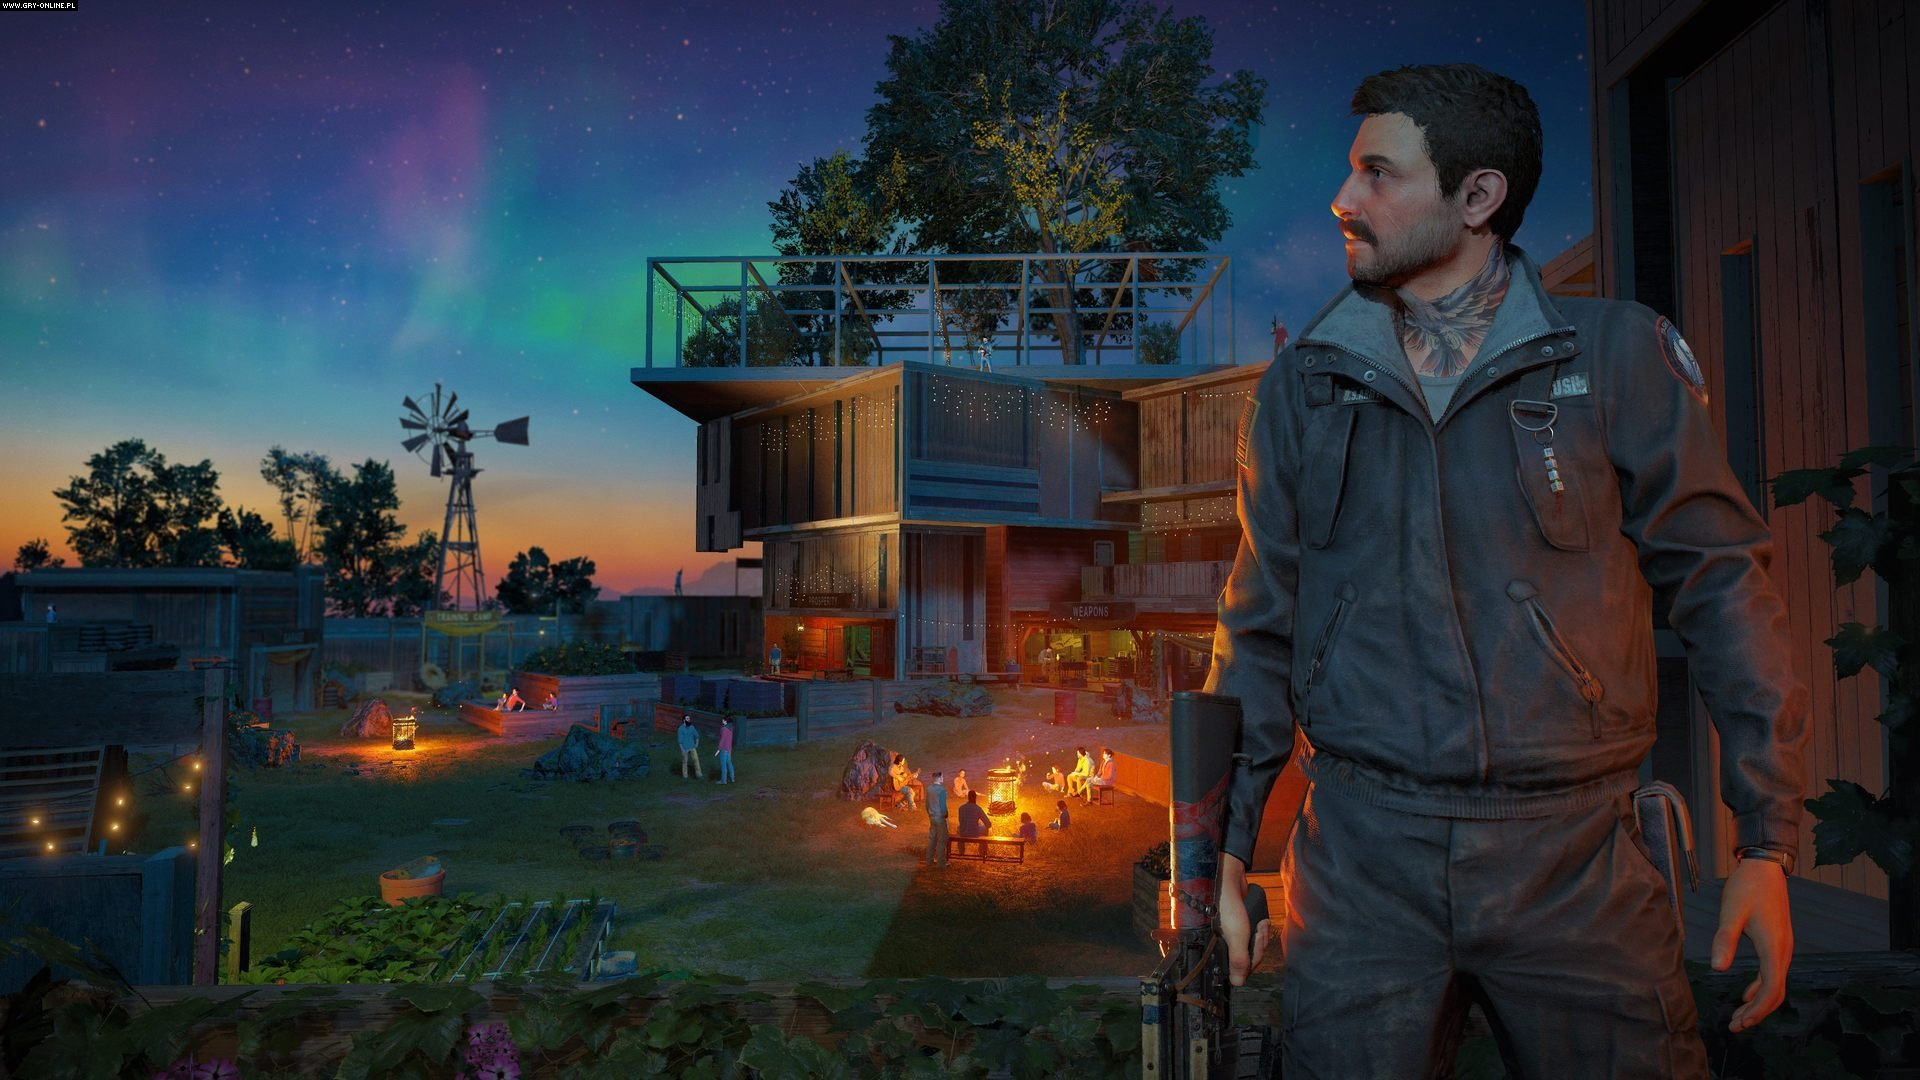 Far Cry: New Dawn PC, PS4, XONE Games Image 6/9, Ubisoft